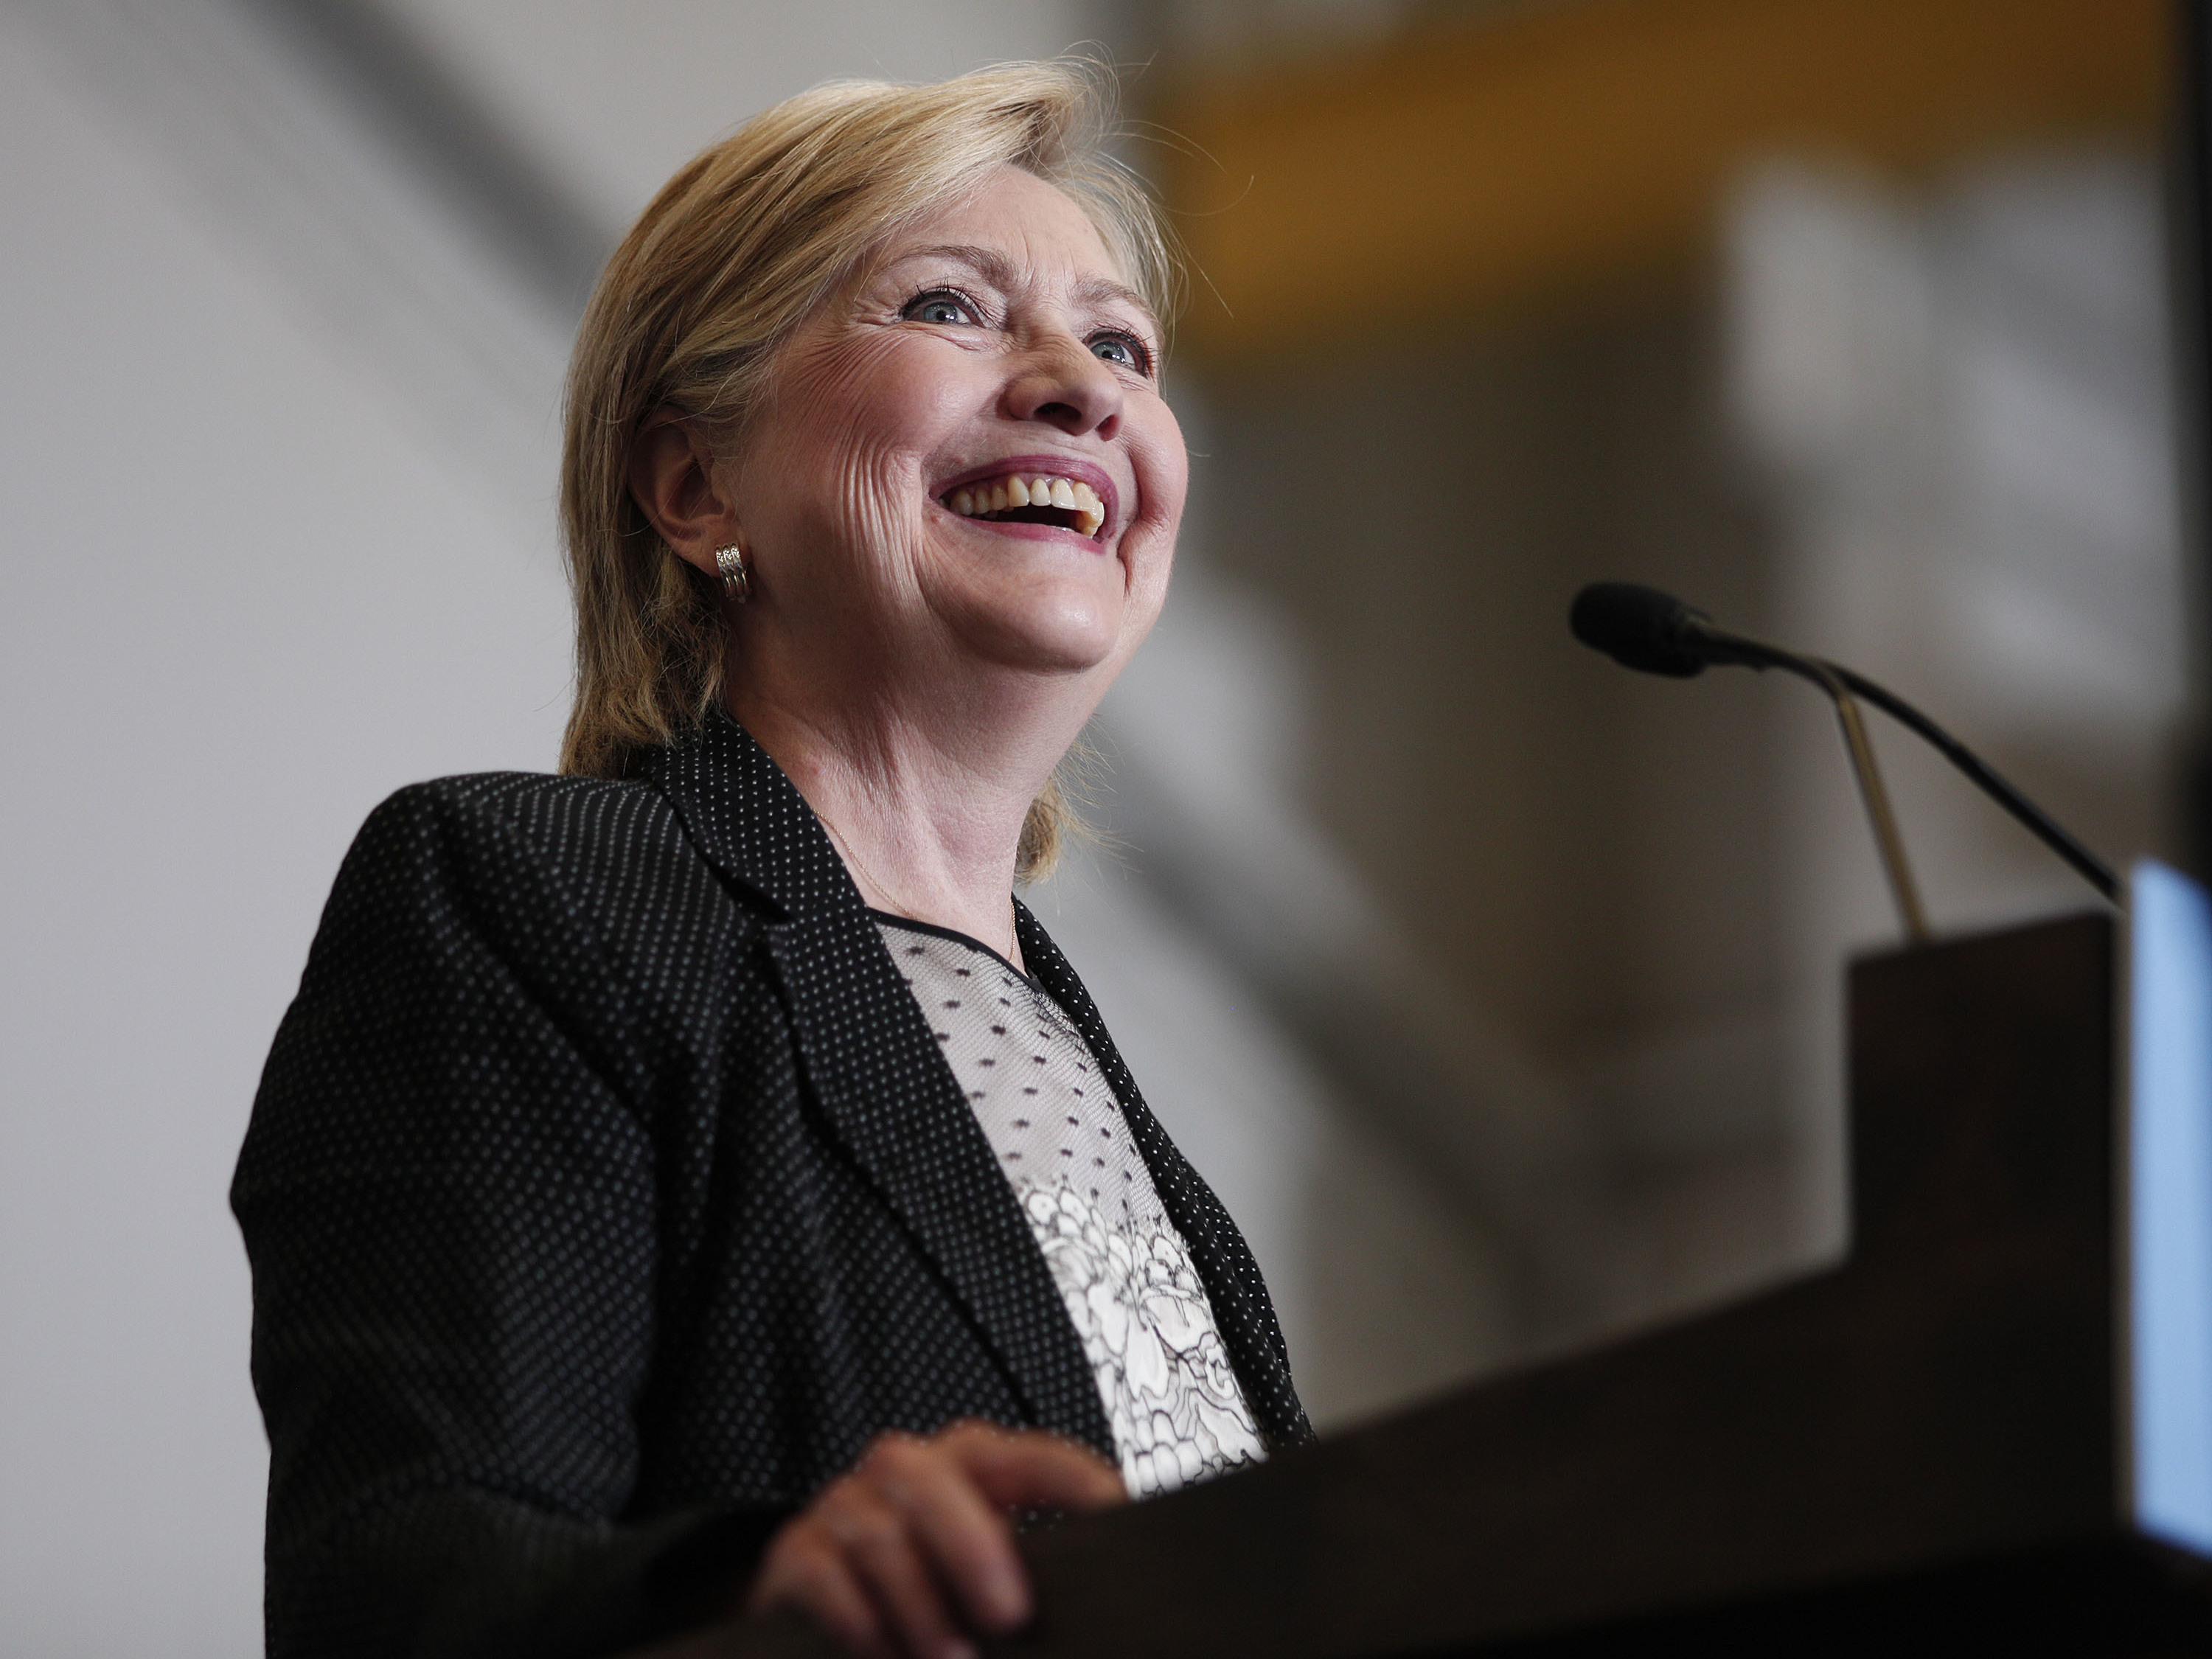 Clinton denies foundation ties to State Department